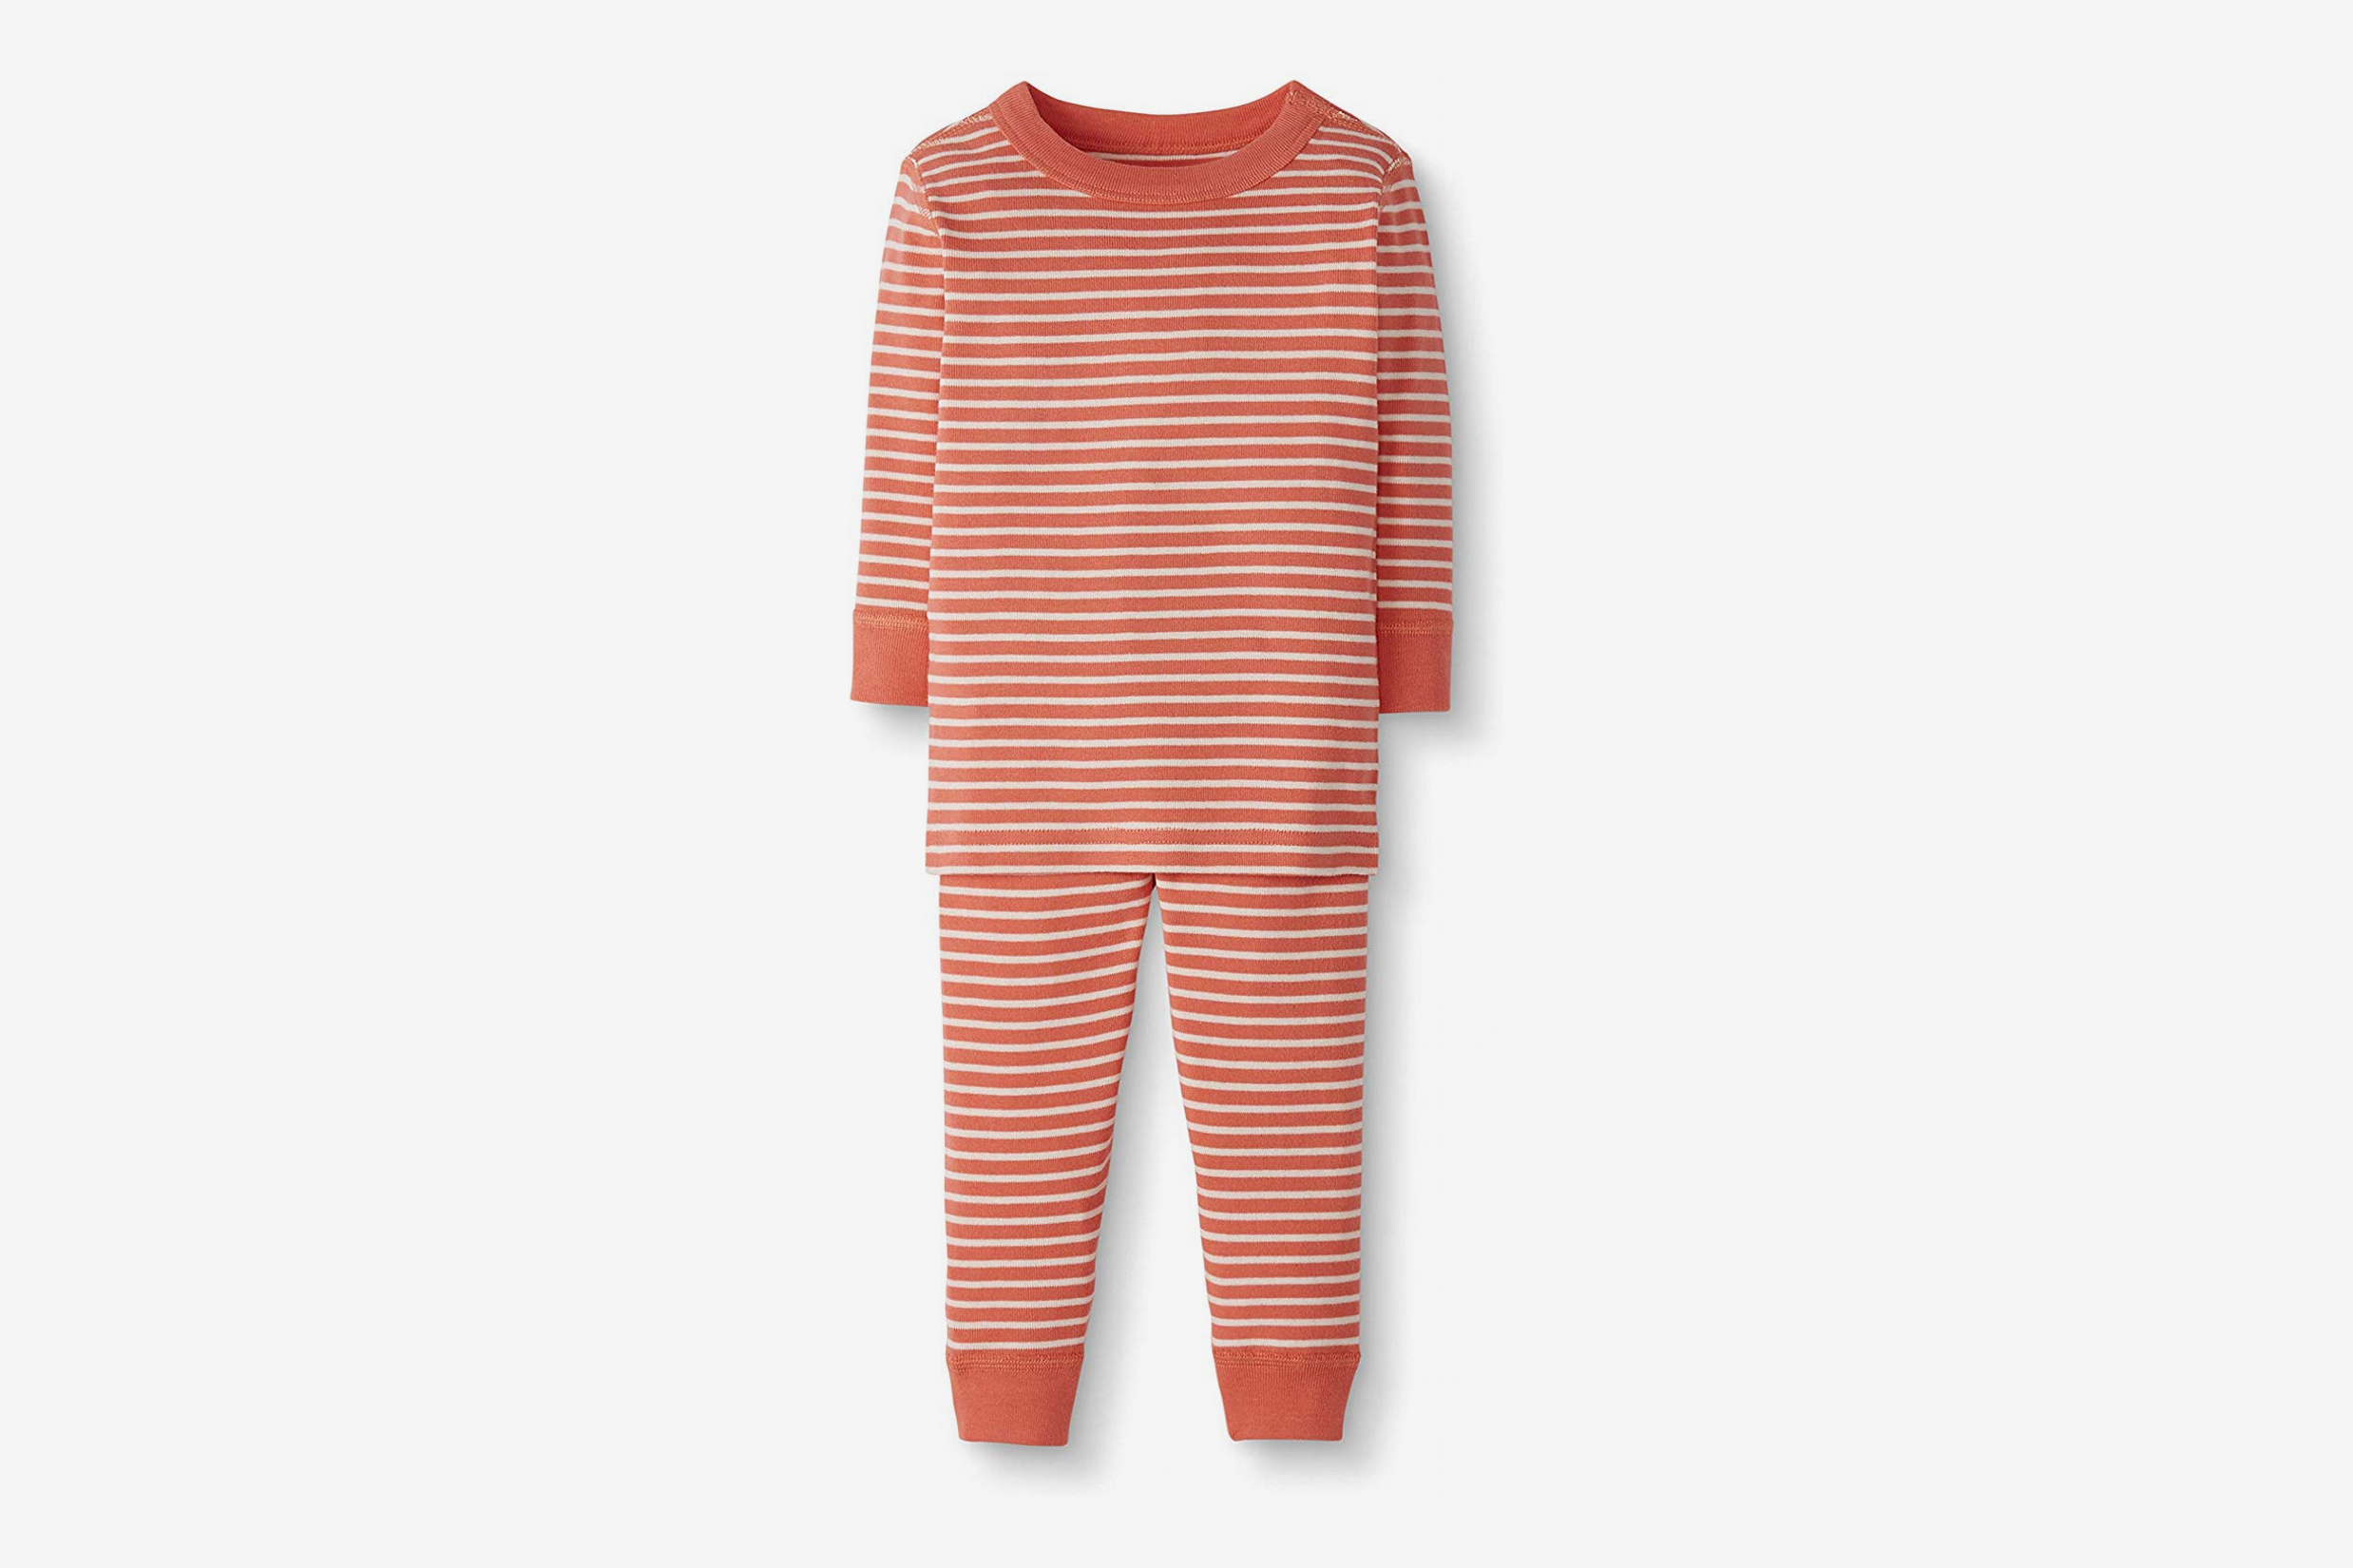 Moon and Back by Hanna Andersson Baby/Toddler Organic Cotton Long Sleeve Stripe Pajama Set,  2-Piece